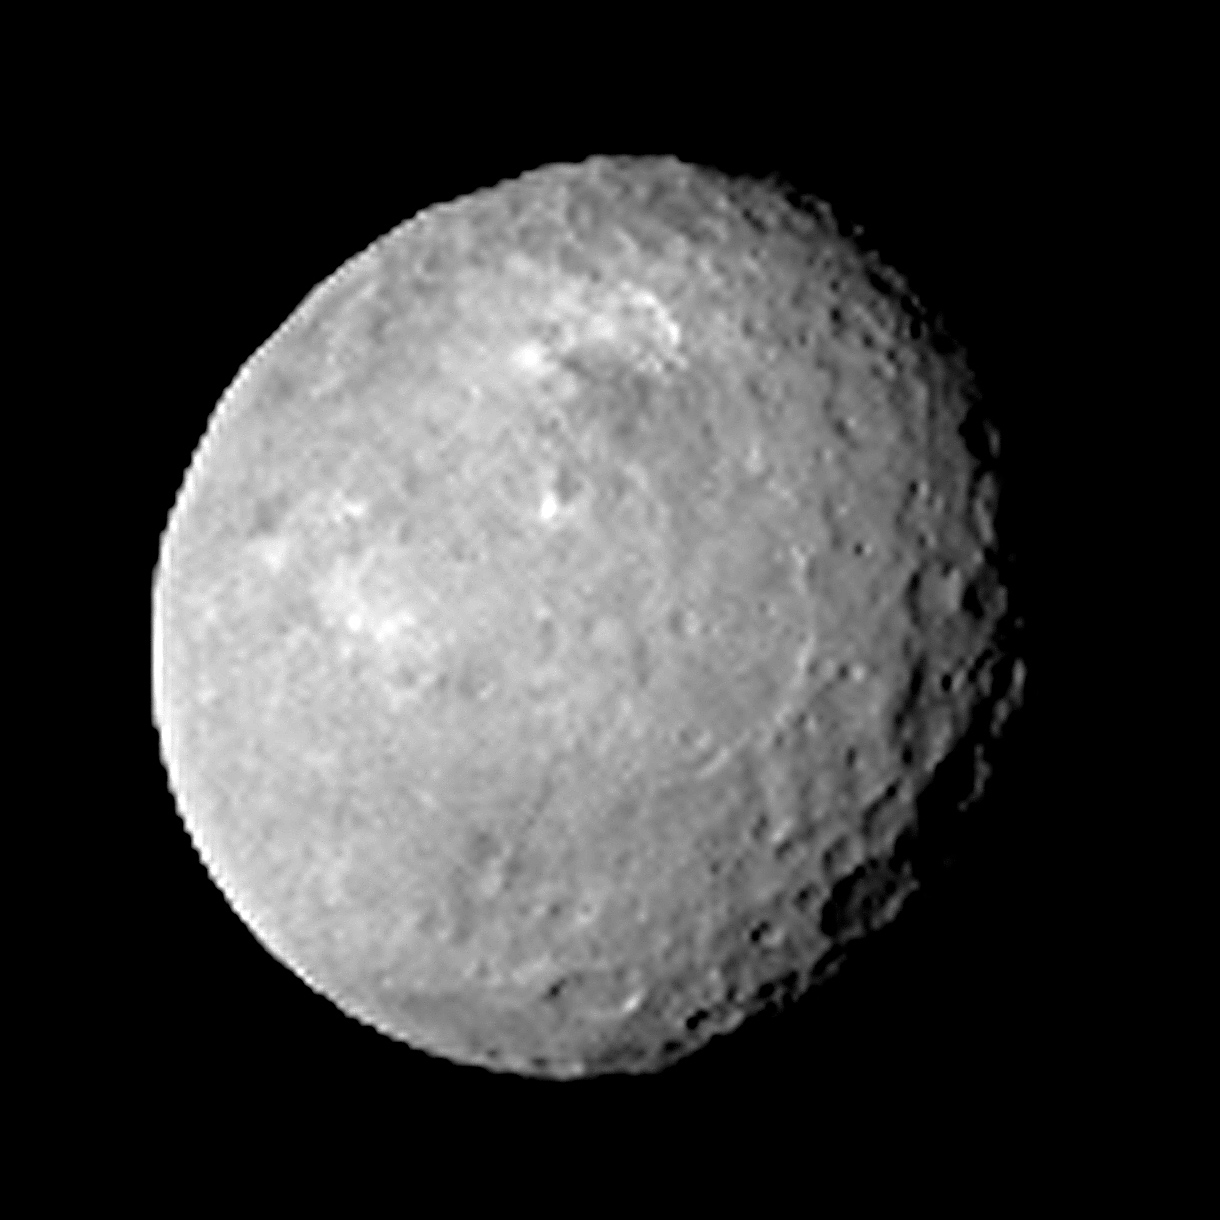 Hello Ceres Dwarf Planet S Features Come Into Focus